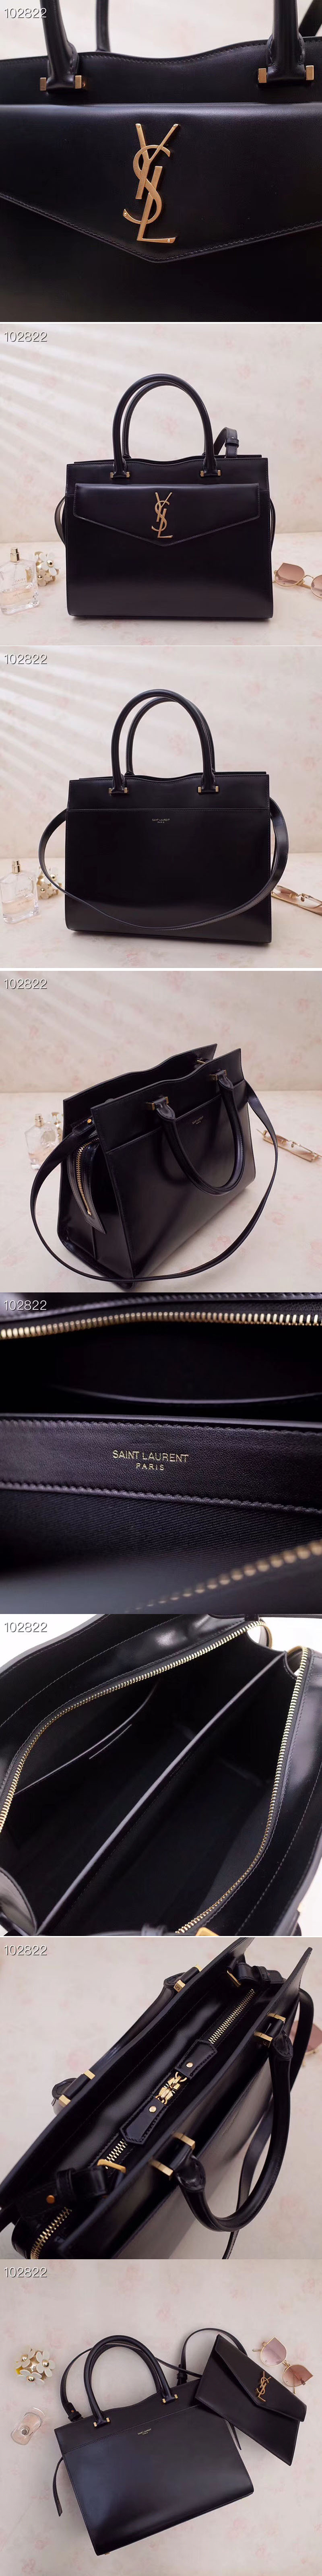 fa2009814c YSL Saint Laurent Medium Uptown Tote in Black Shiny Smooth Leather 557653